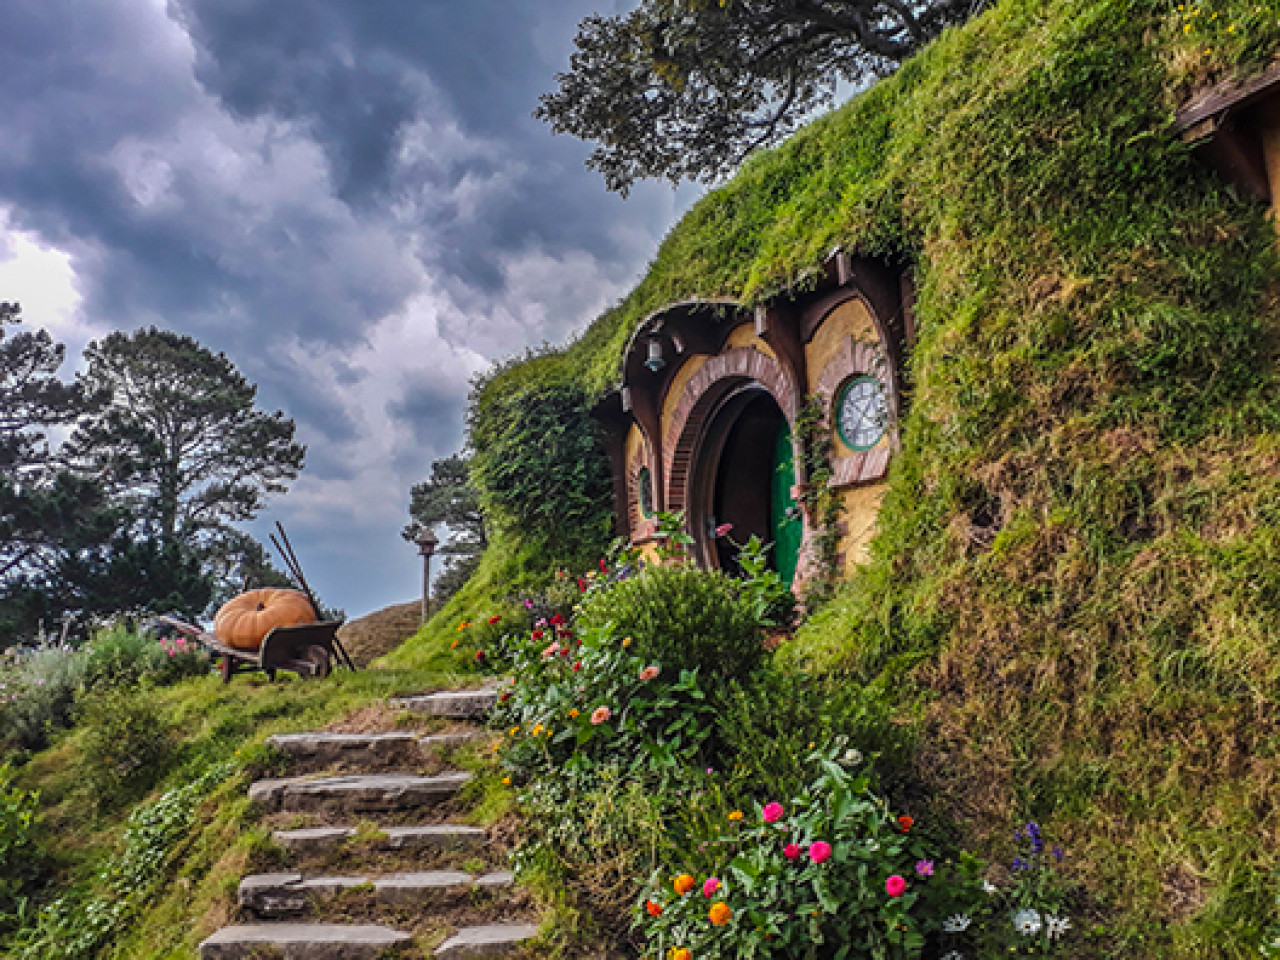 Even if the weather is not picture-perfect, Bag End is a sight to behold.